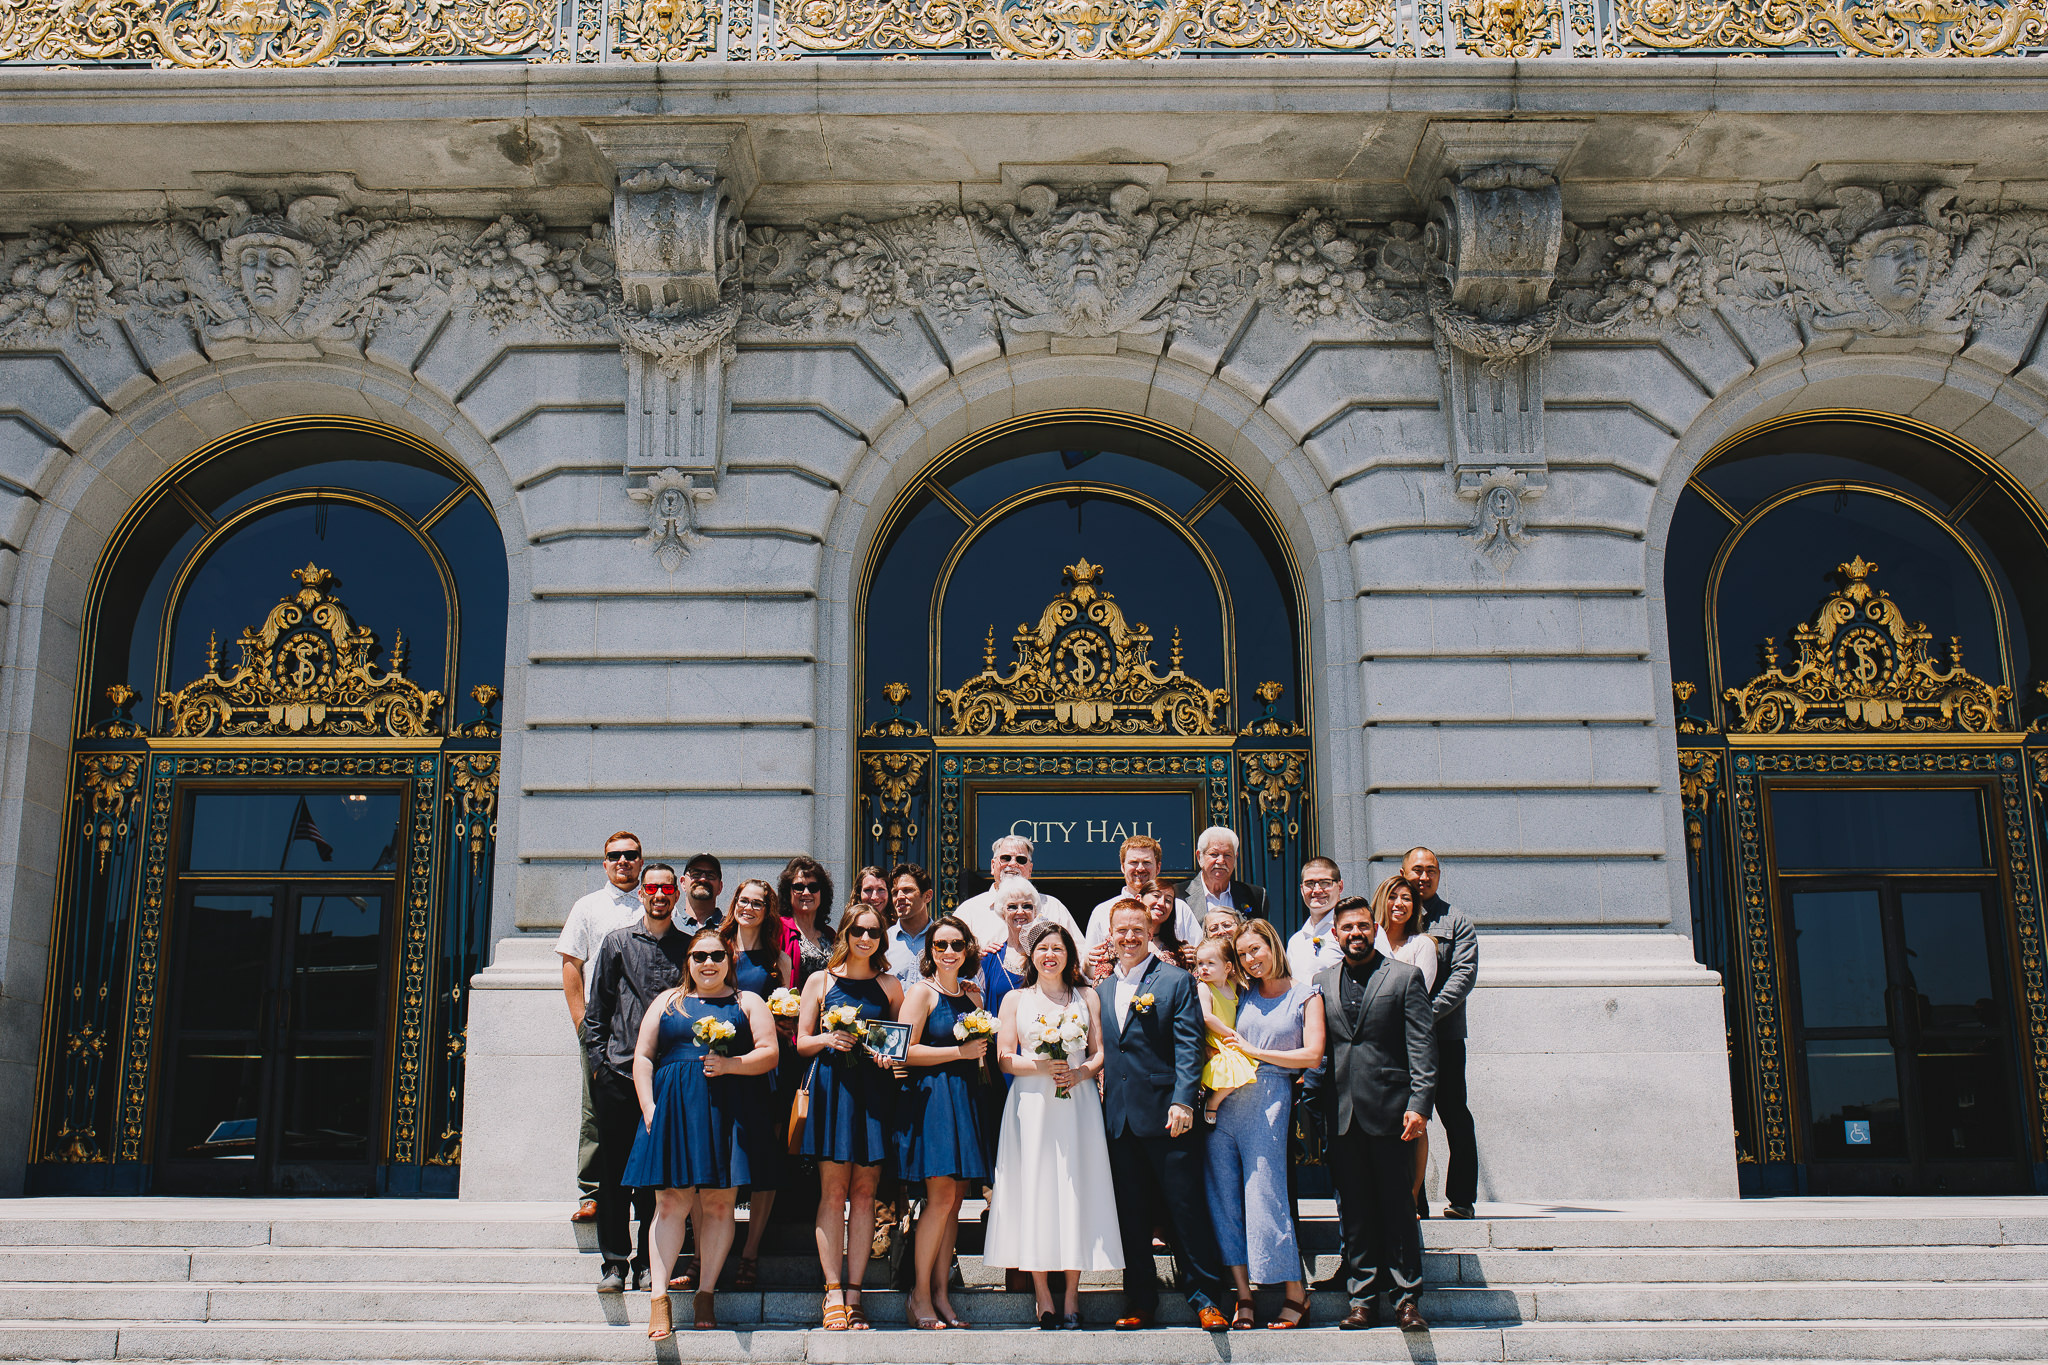 Archer Inspired Photography SF City Hall Elopement Wedding Lifestyle Documentary Affordable Photographer-216.jpg